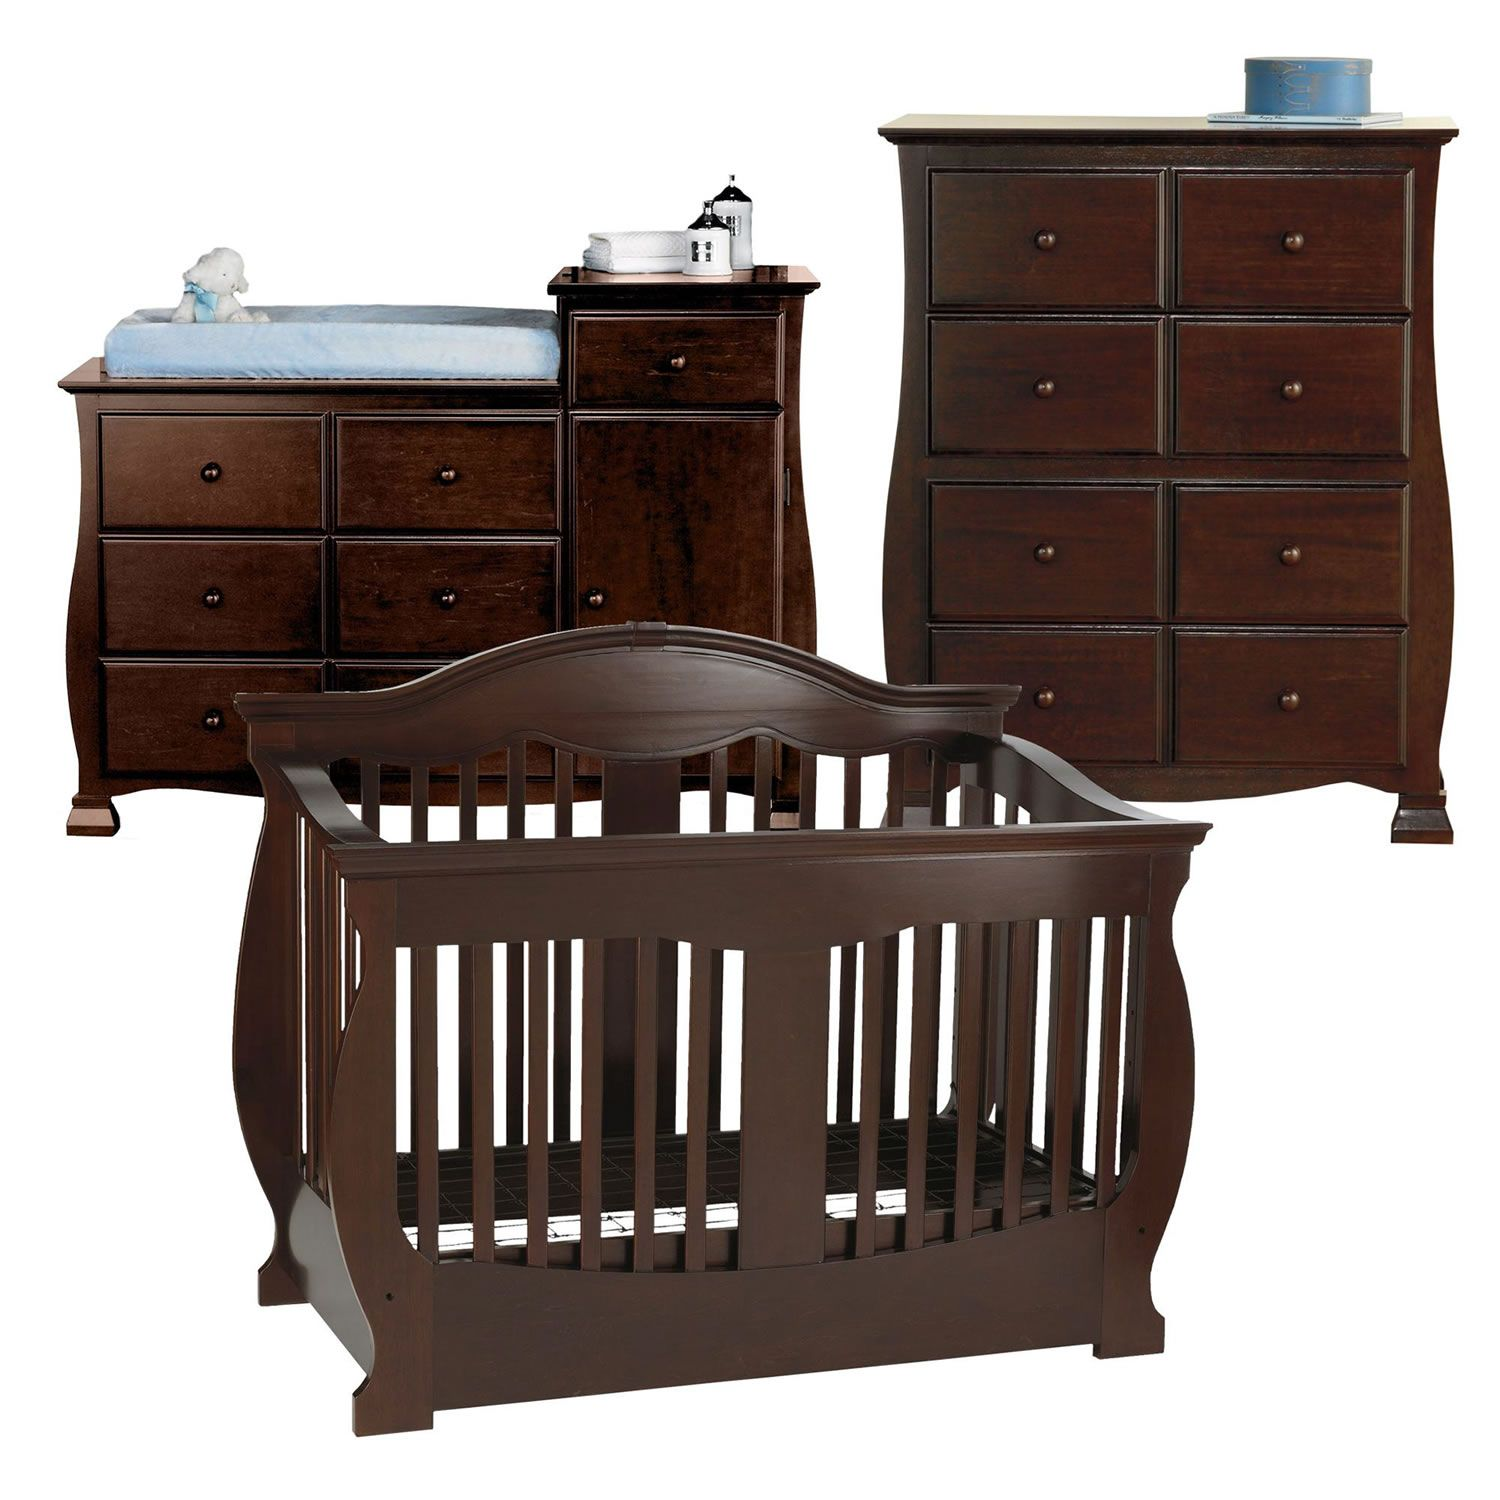 Jcpenney Furniture Outlet Ohio: Savanna Grayson 3-pc. Baby Furniture Set